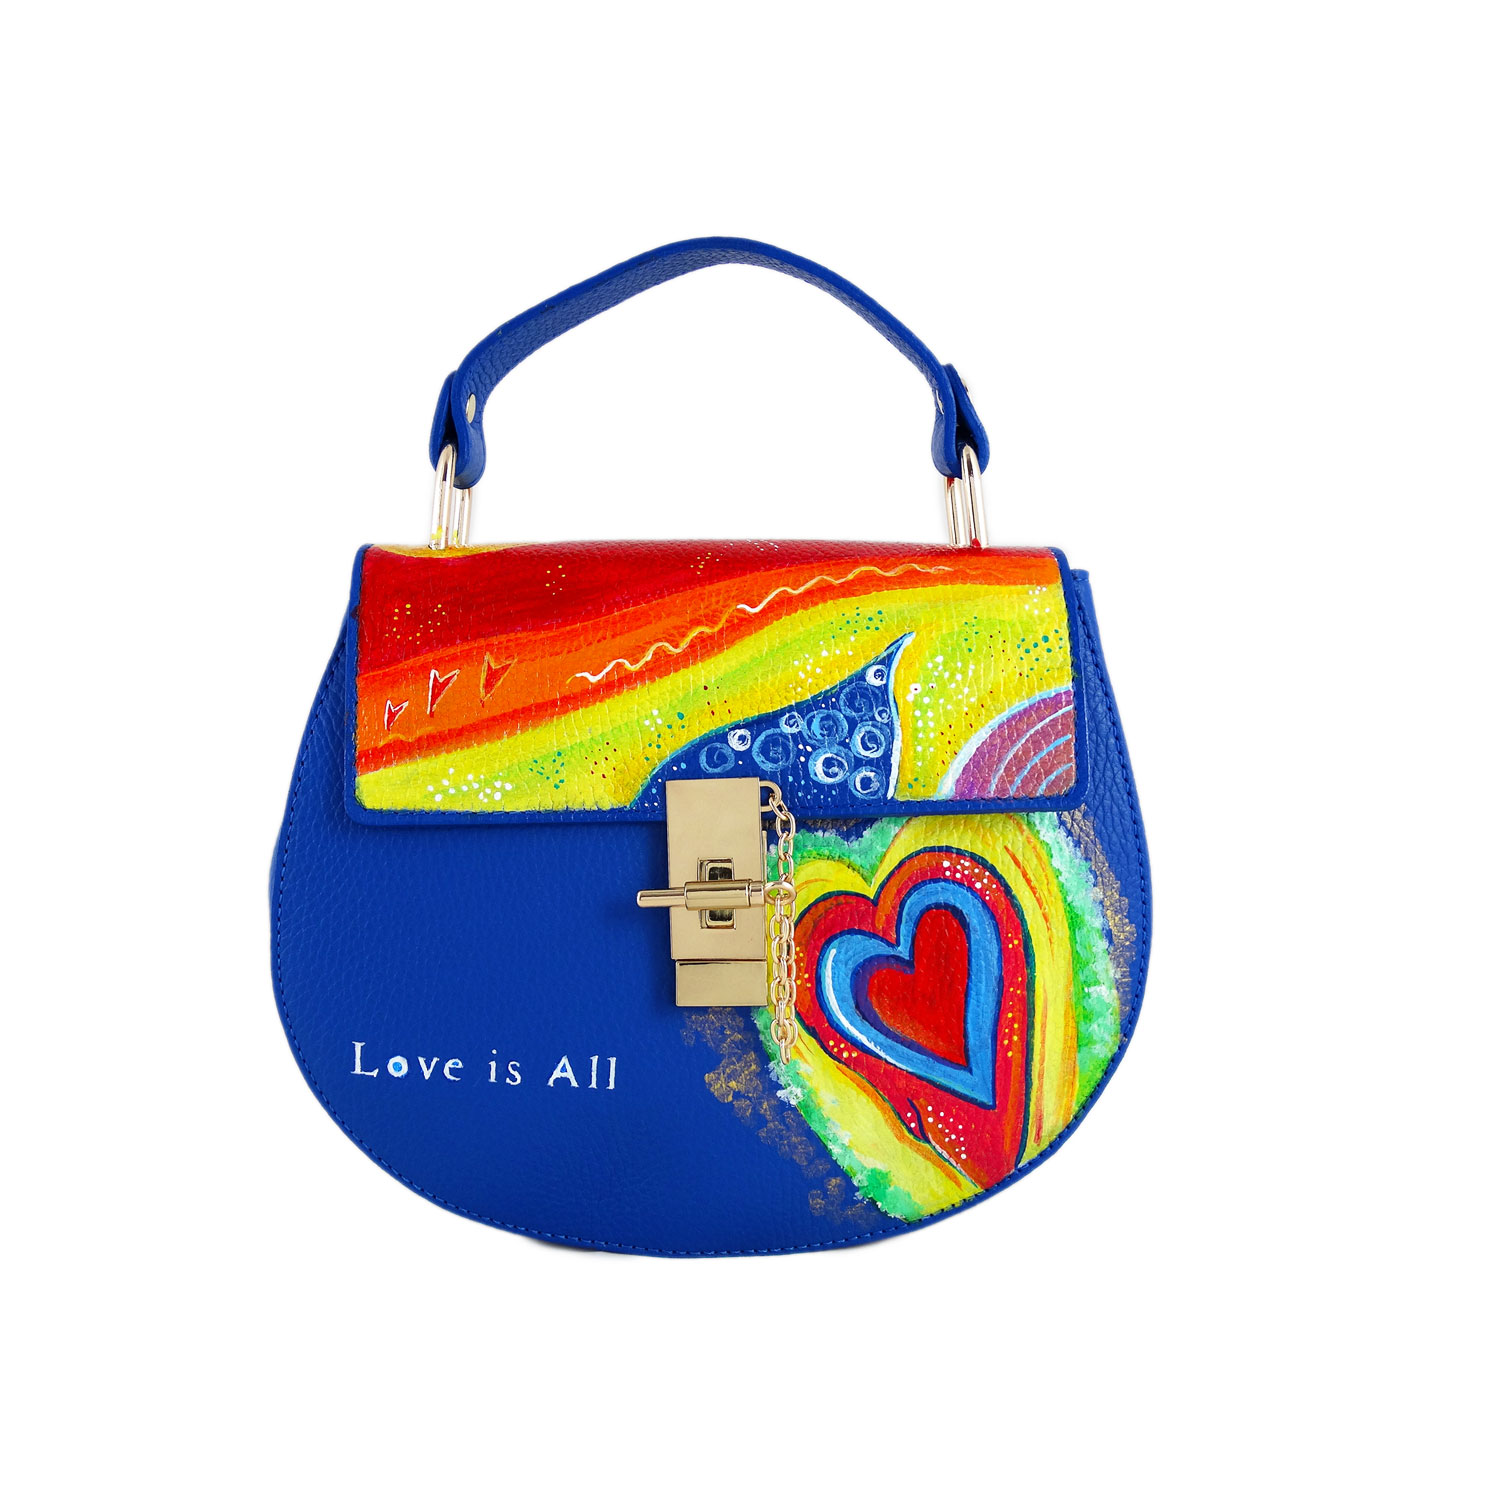 Borsa dipinta a mano – Love is all